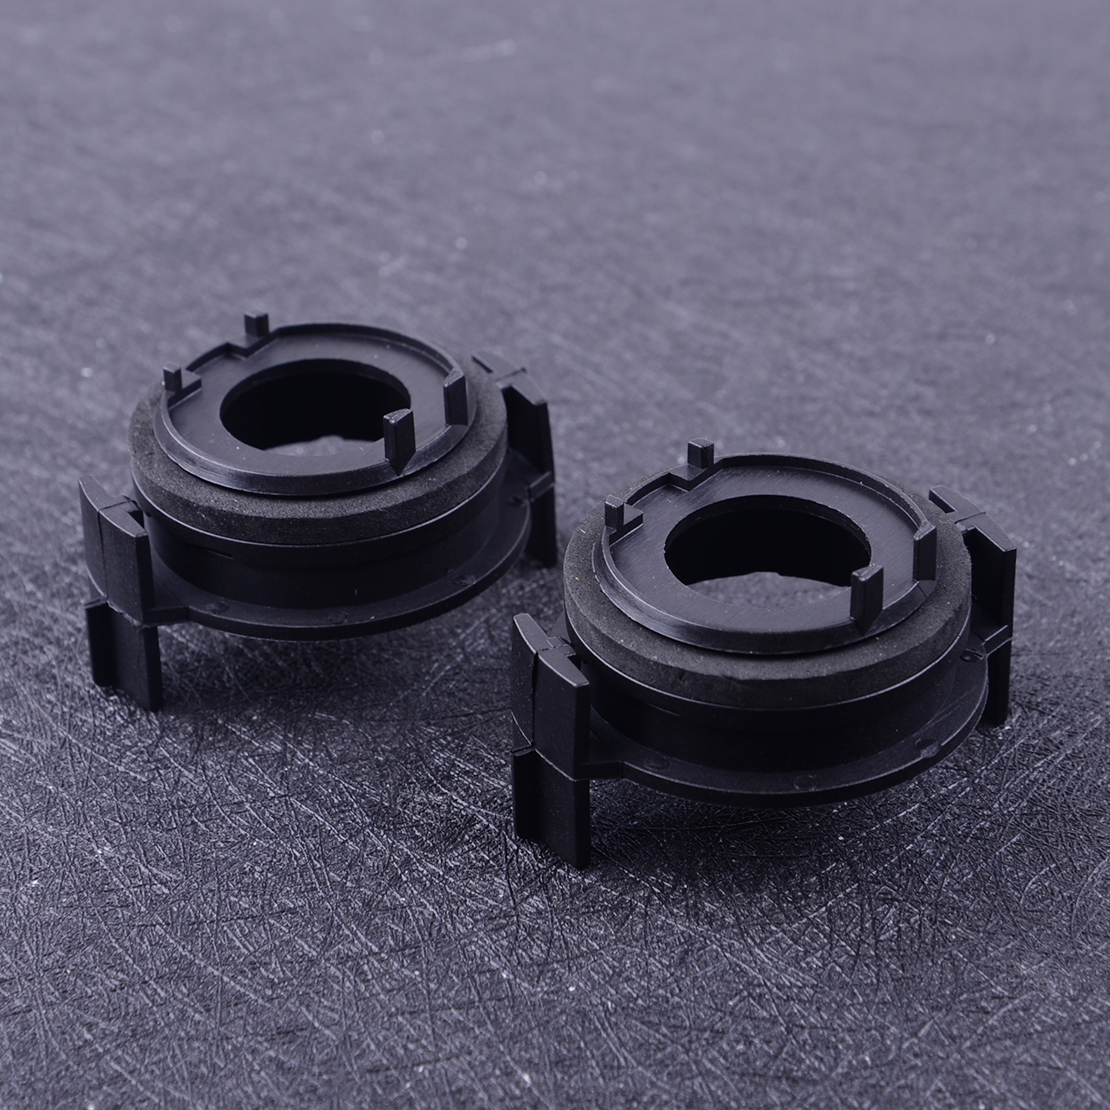 beler 2pcs Black Plastic <font><b>LED</b></font> Headlight Bulbs Lamp Light Clip <font><b>Adapter</b></font> Socket Base Holder Retainer Fit For <font><b>BMW</b></font> <font><b>E46</b></font> E90 3 Series image